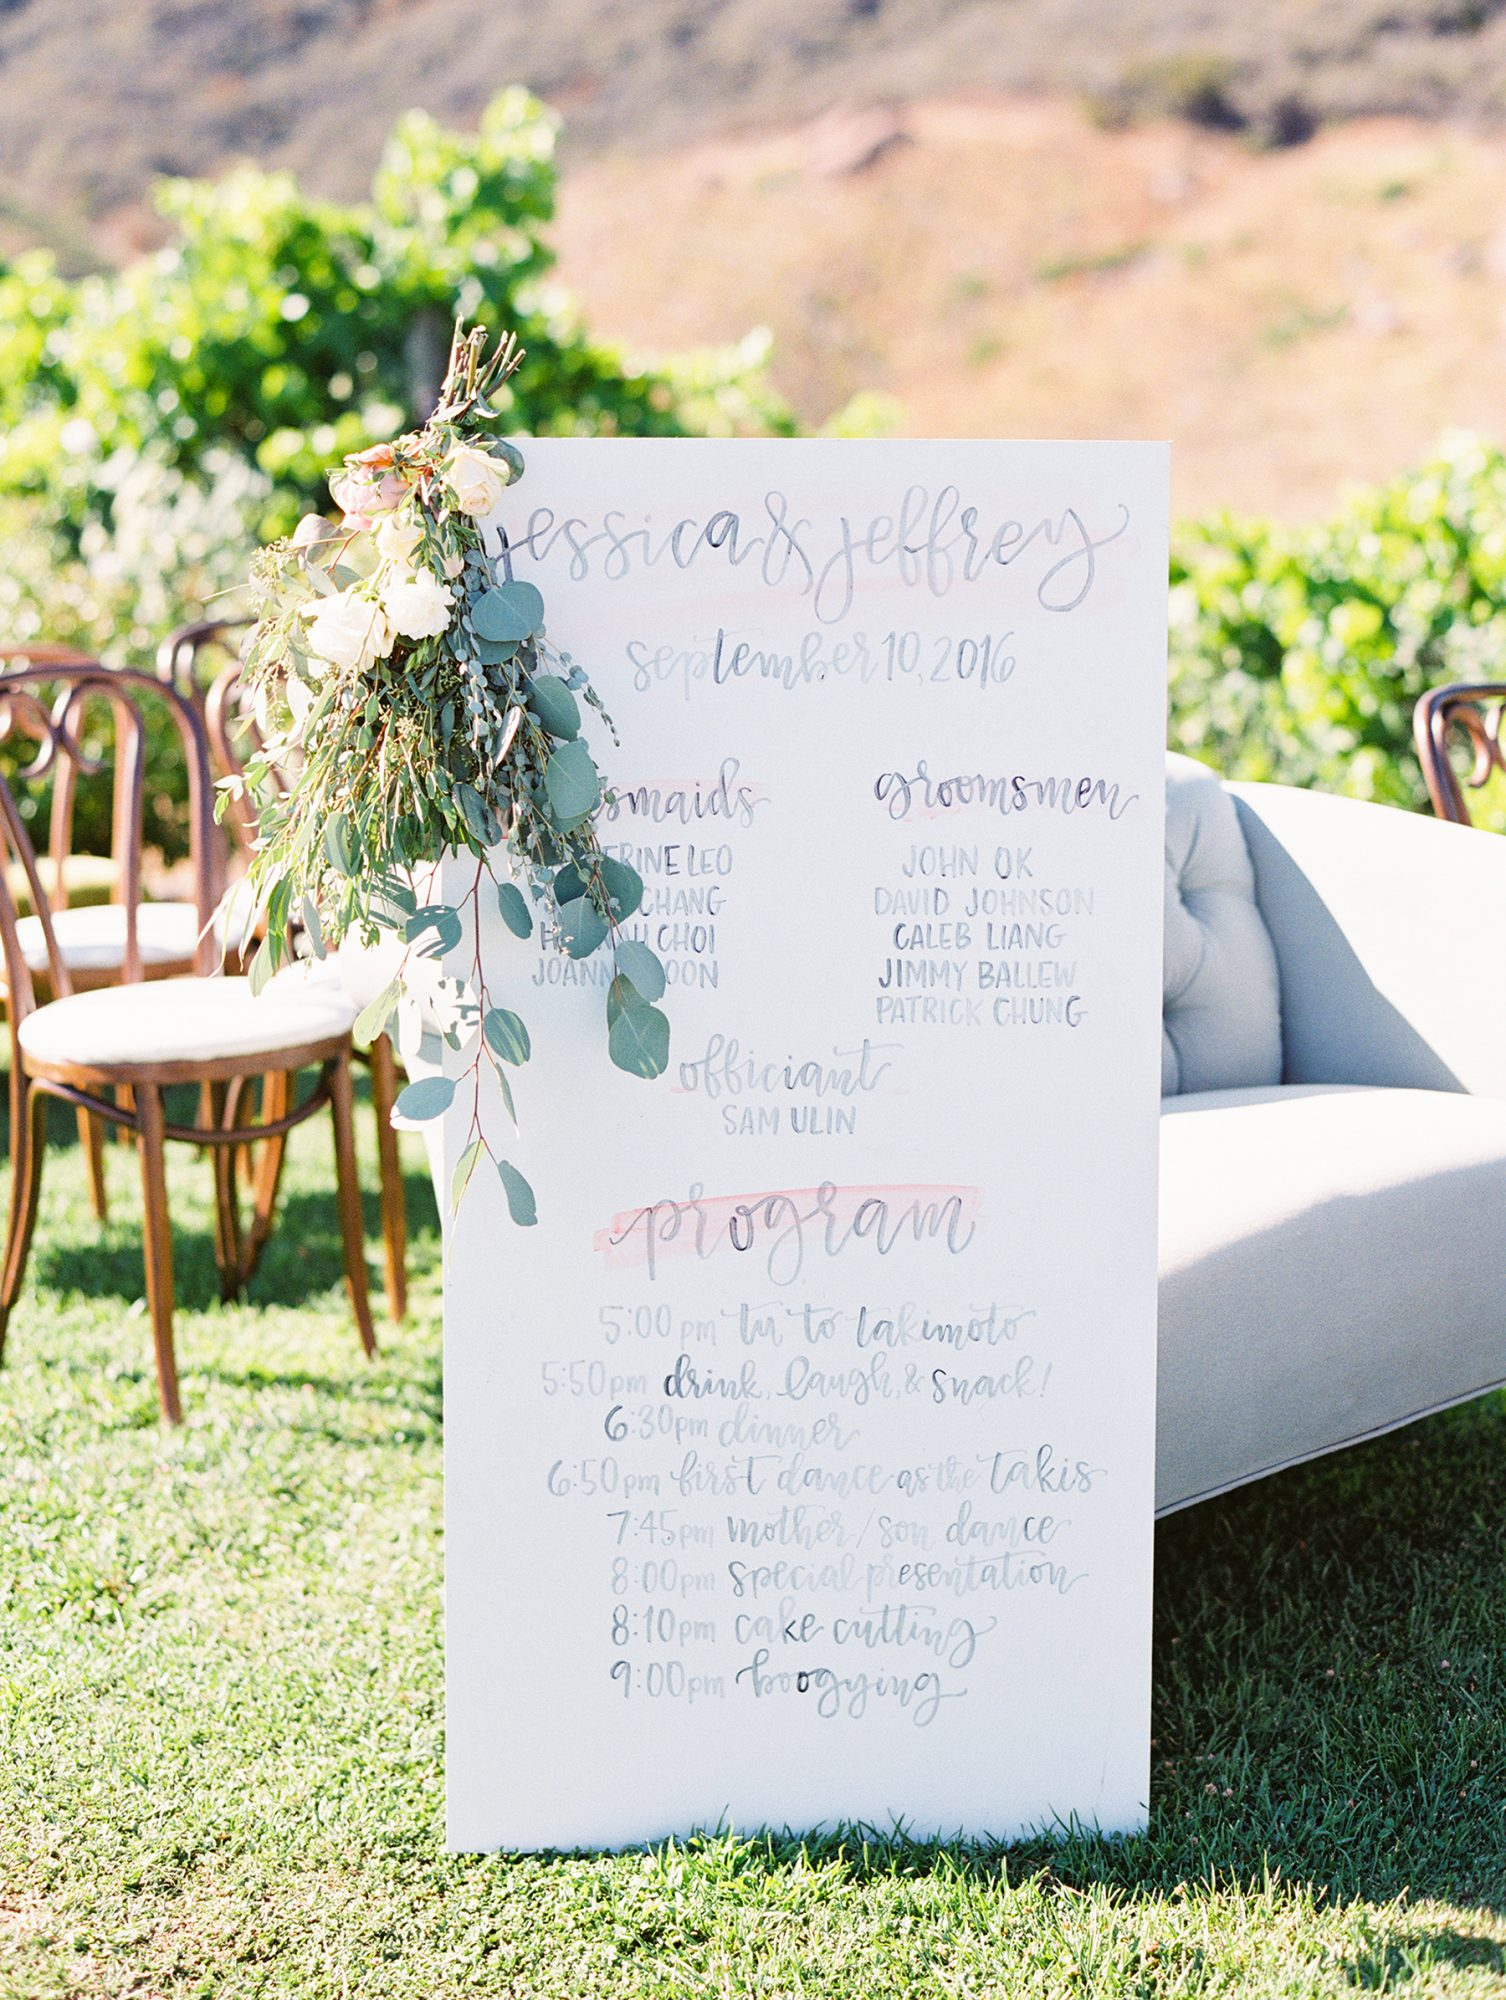 44 Perfect Wedding Ceremony Programs | Martha Stewart